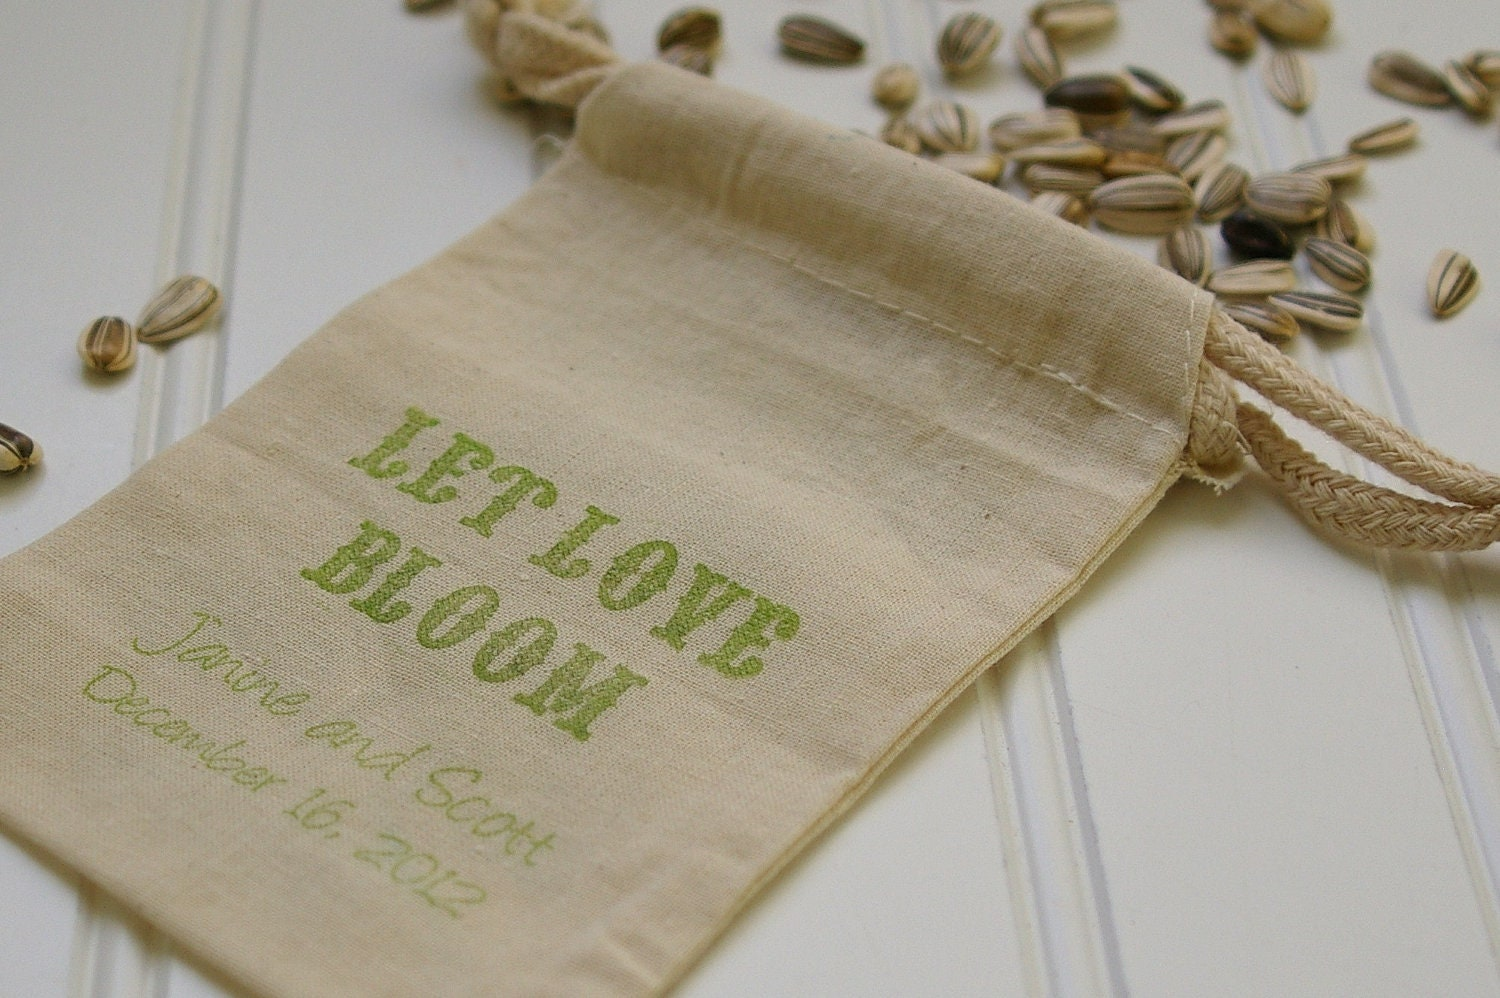 flower seeds as wedding favors